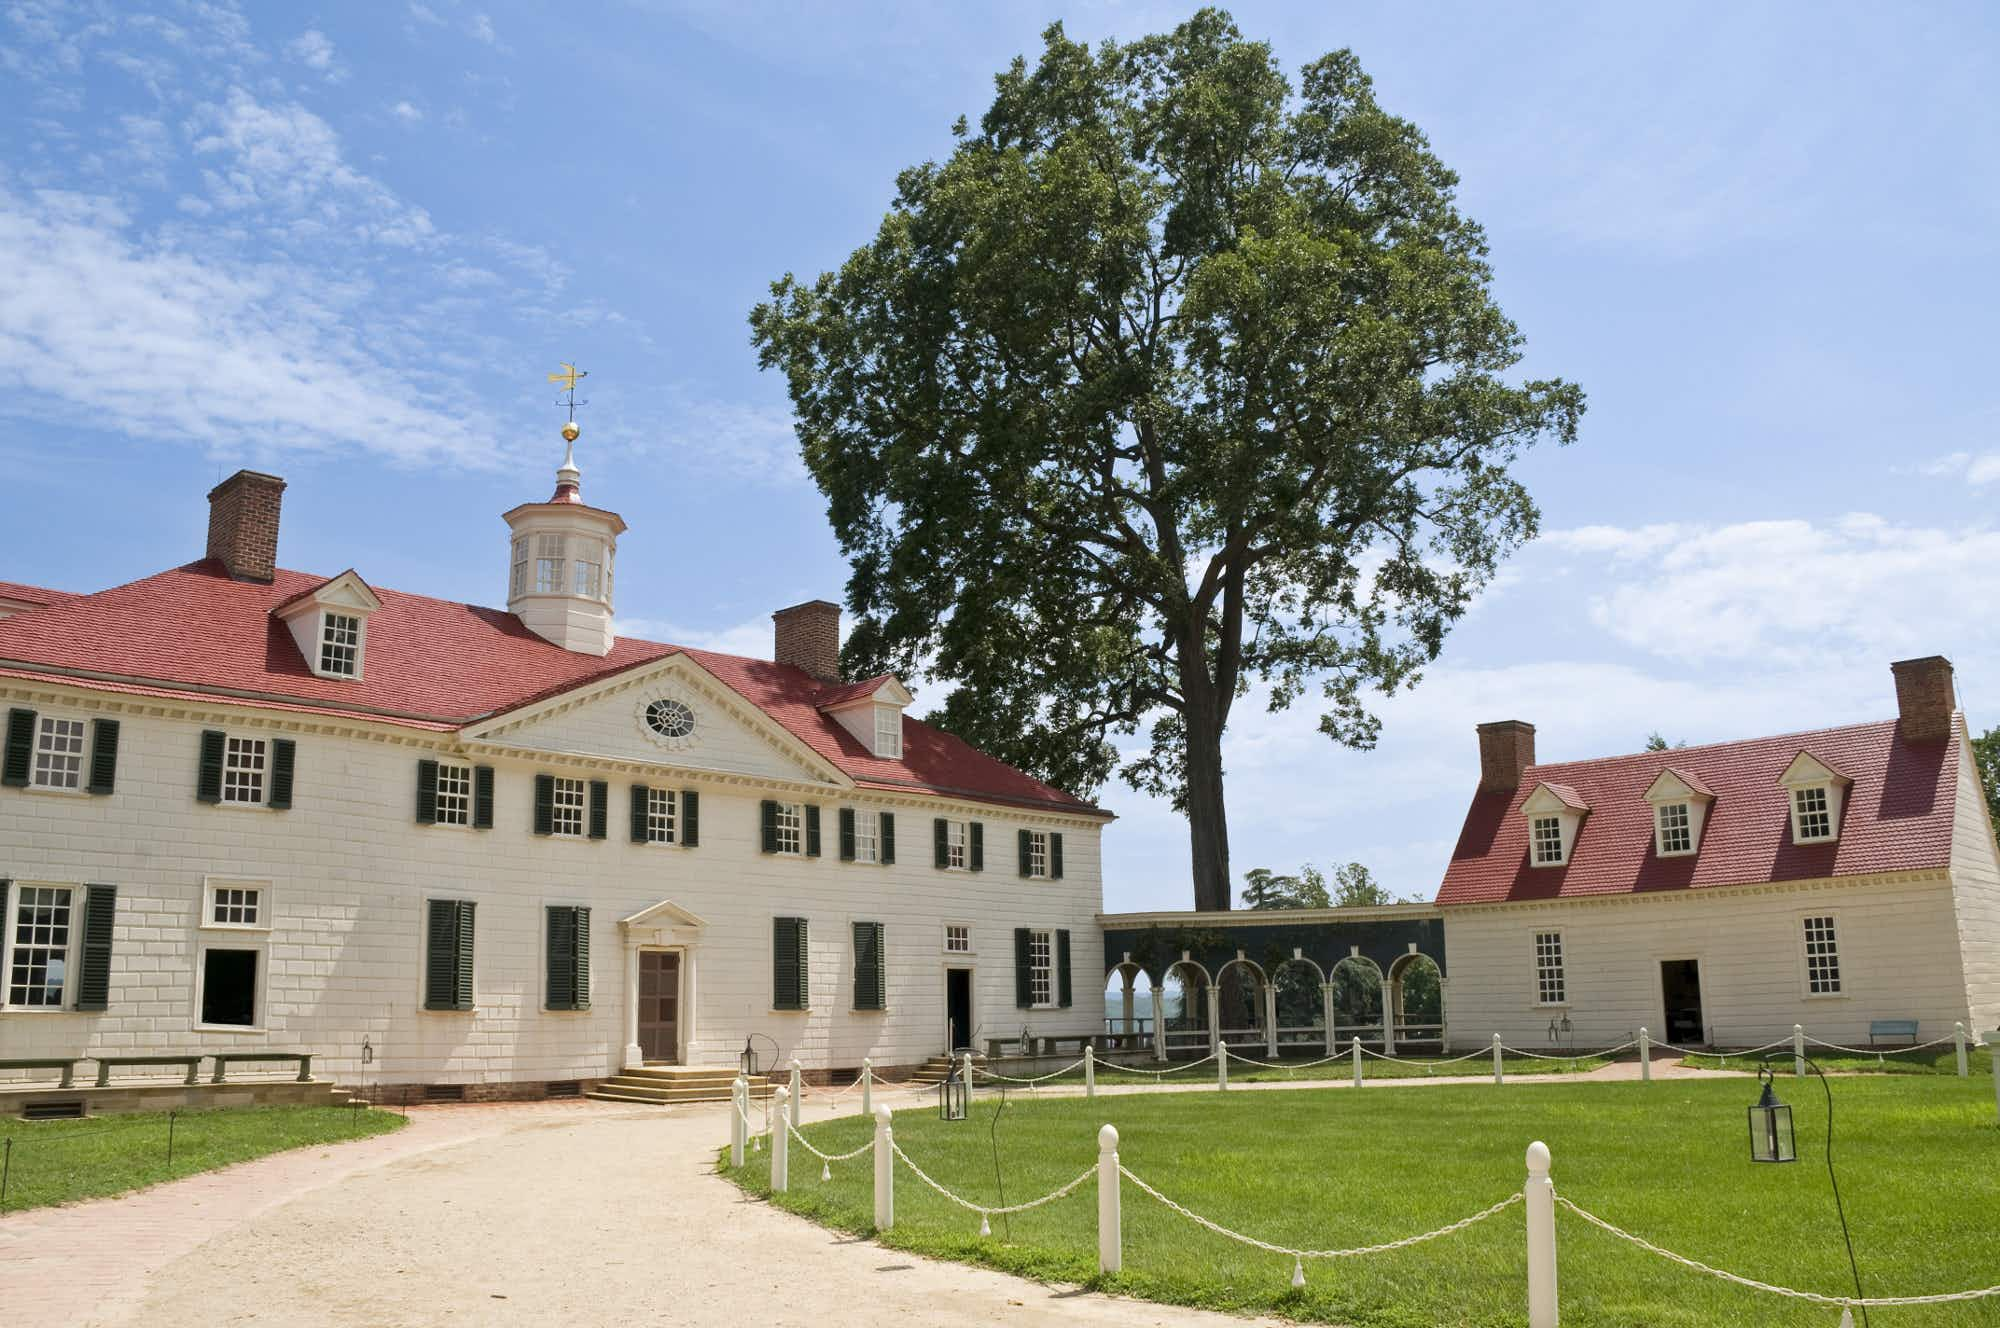 New 4-D film at Mount Vernon brings the Revolutionary War to life